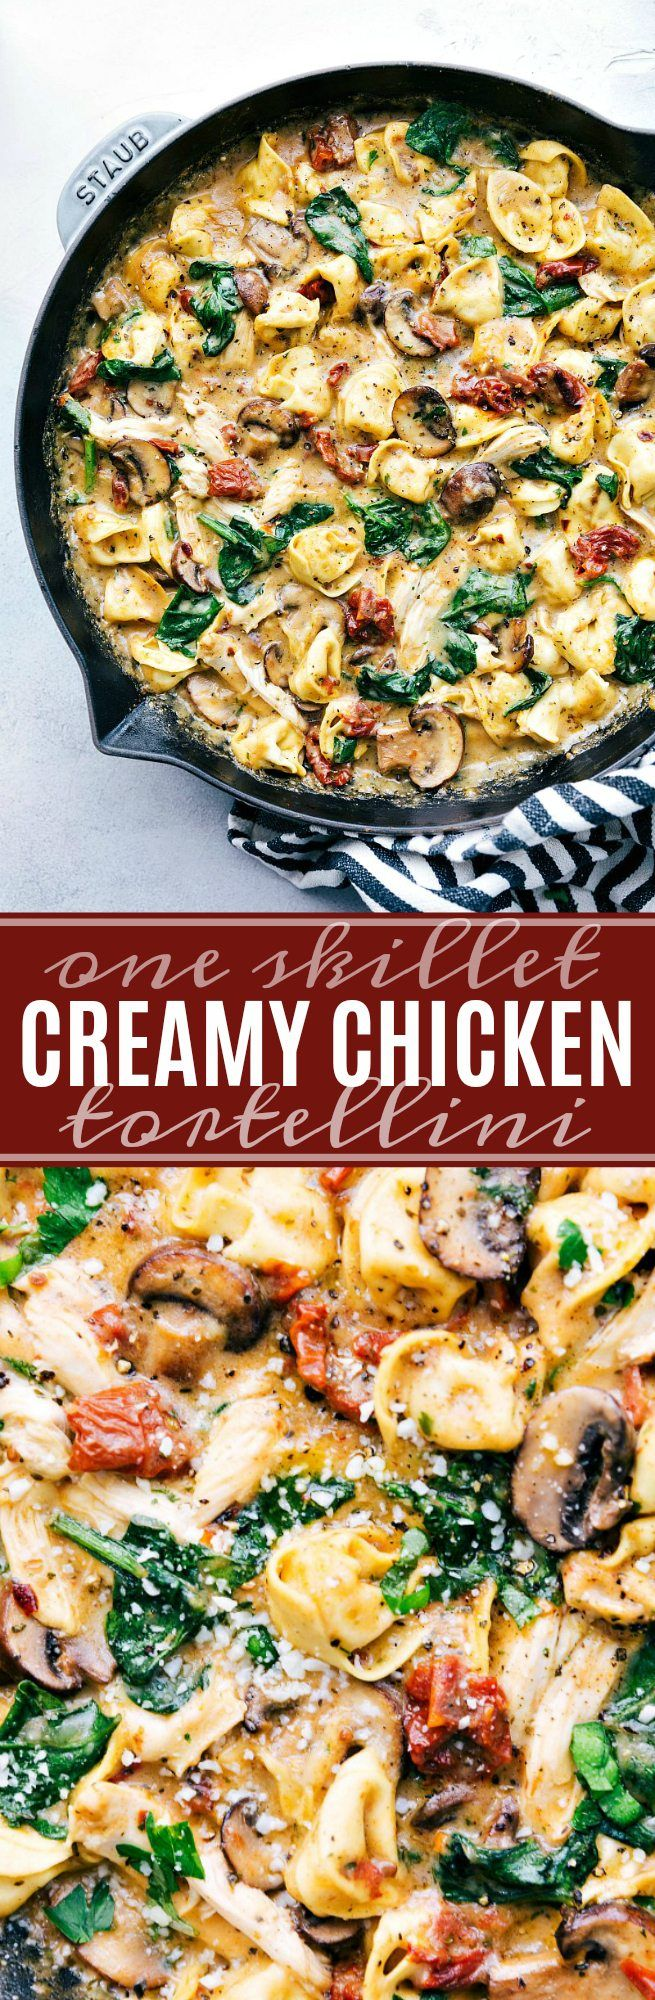 An easy and delicious dinner recipe — creamy sun-dried tomato, mushroom, spinach, and chicken tortellini prepared and cooked all in one skillet. This post is brought to you in partnership with McCorm